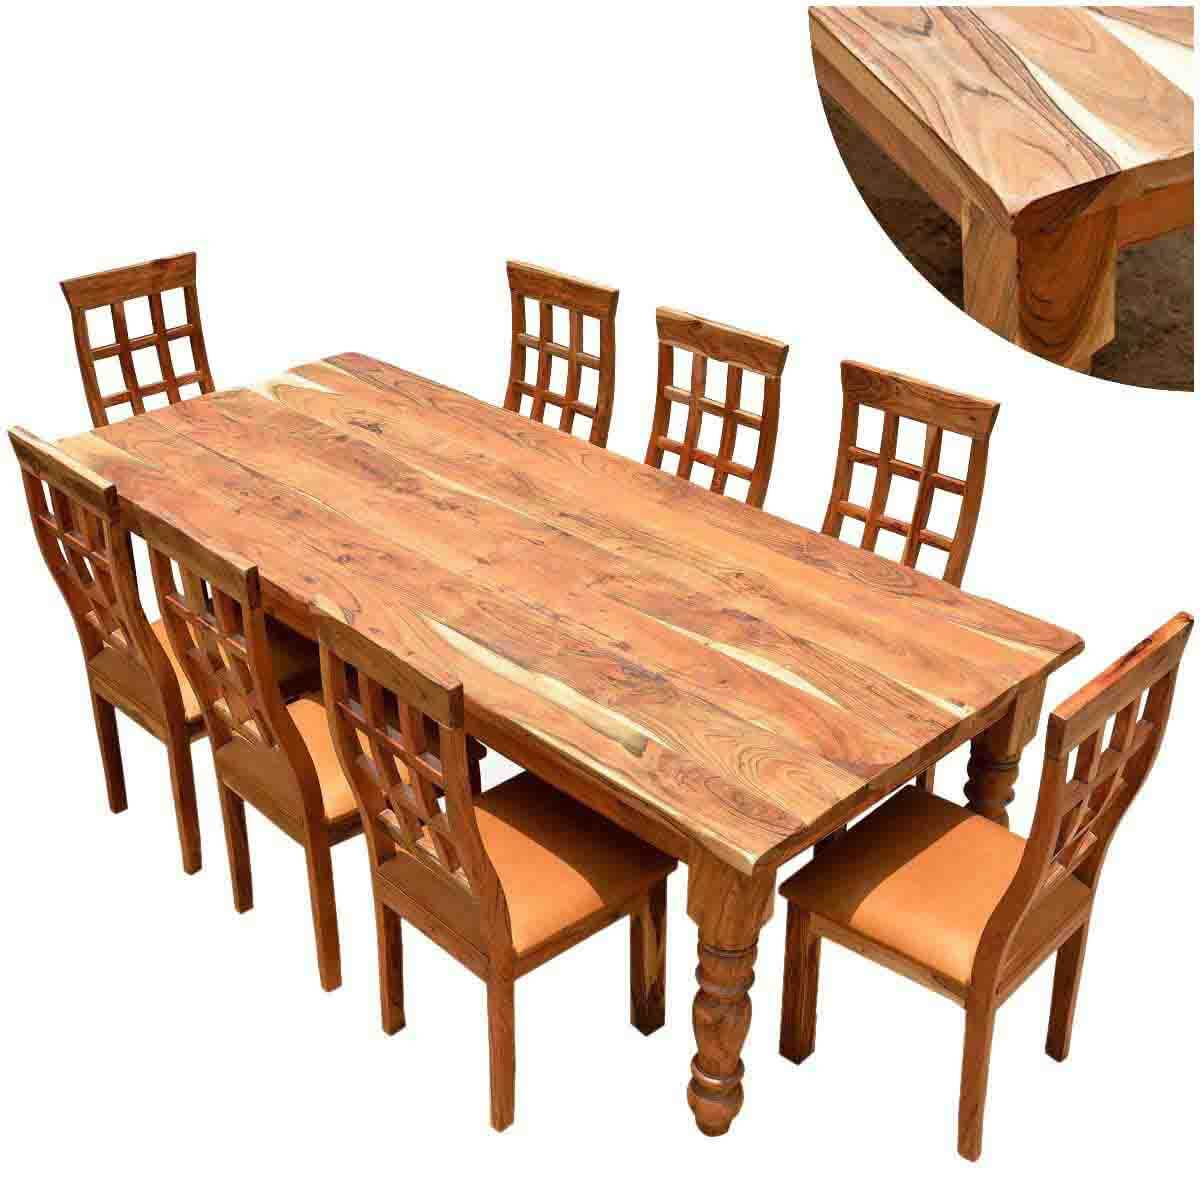 Solid Wood Kitchen Tables: Rustic Dining Table And Chair Sets